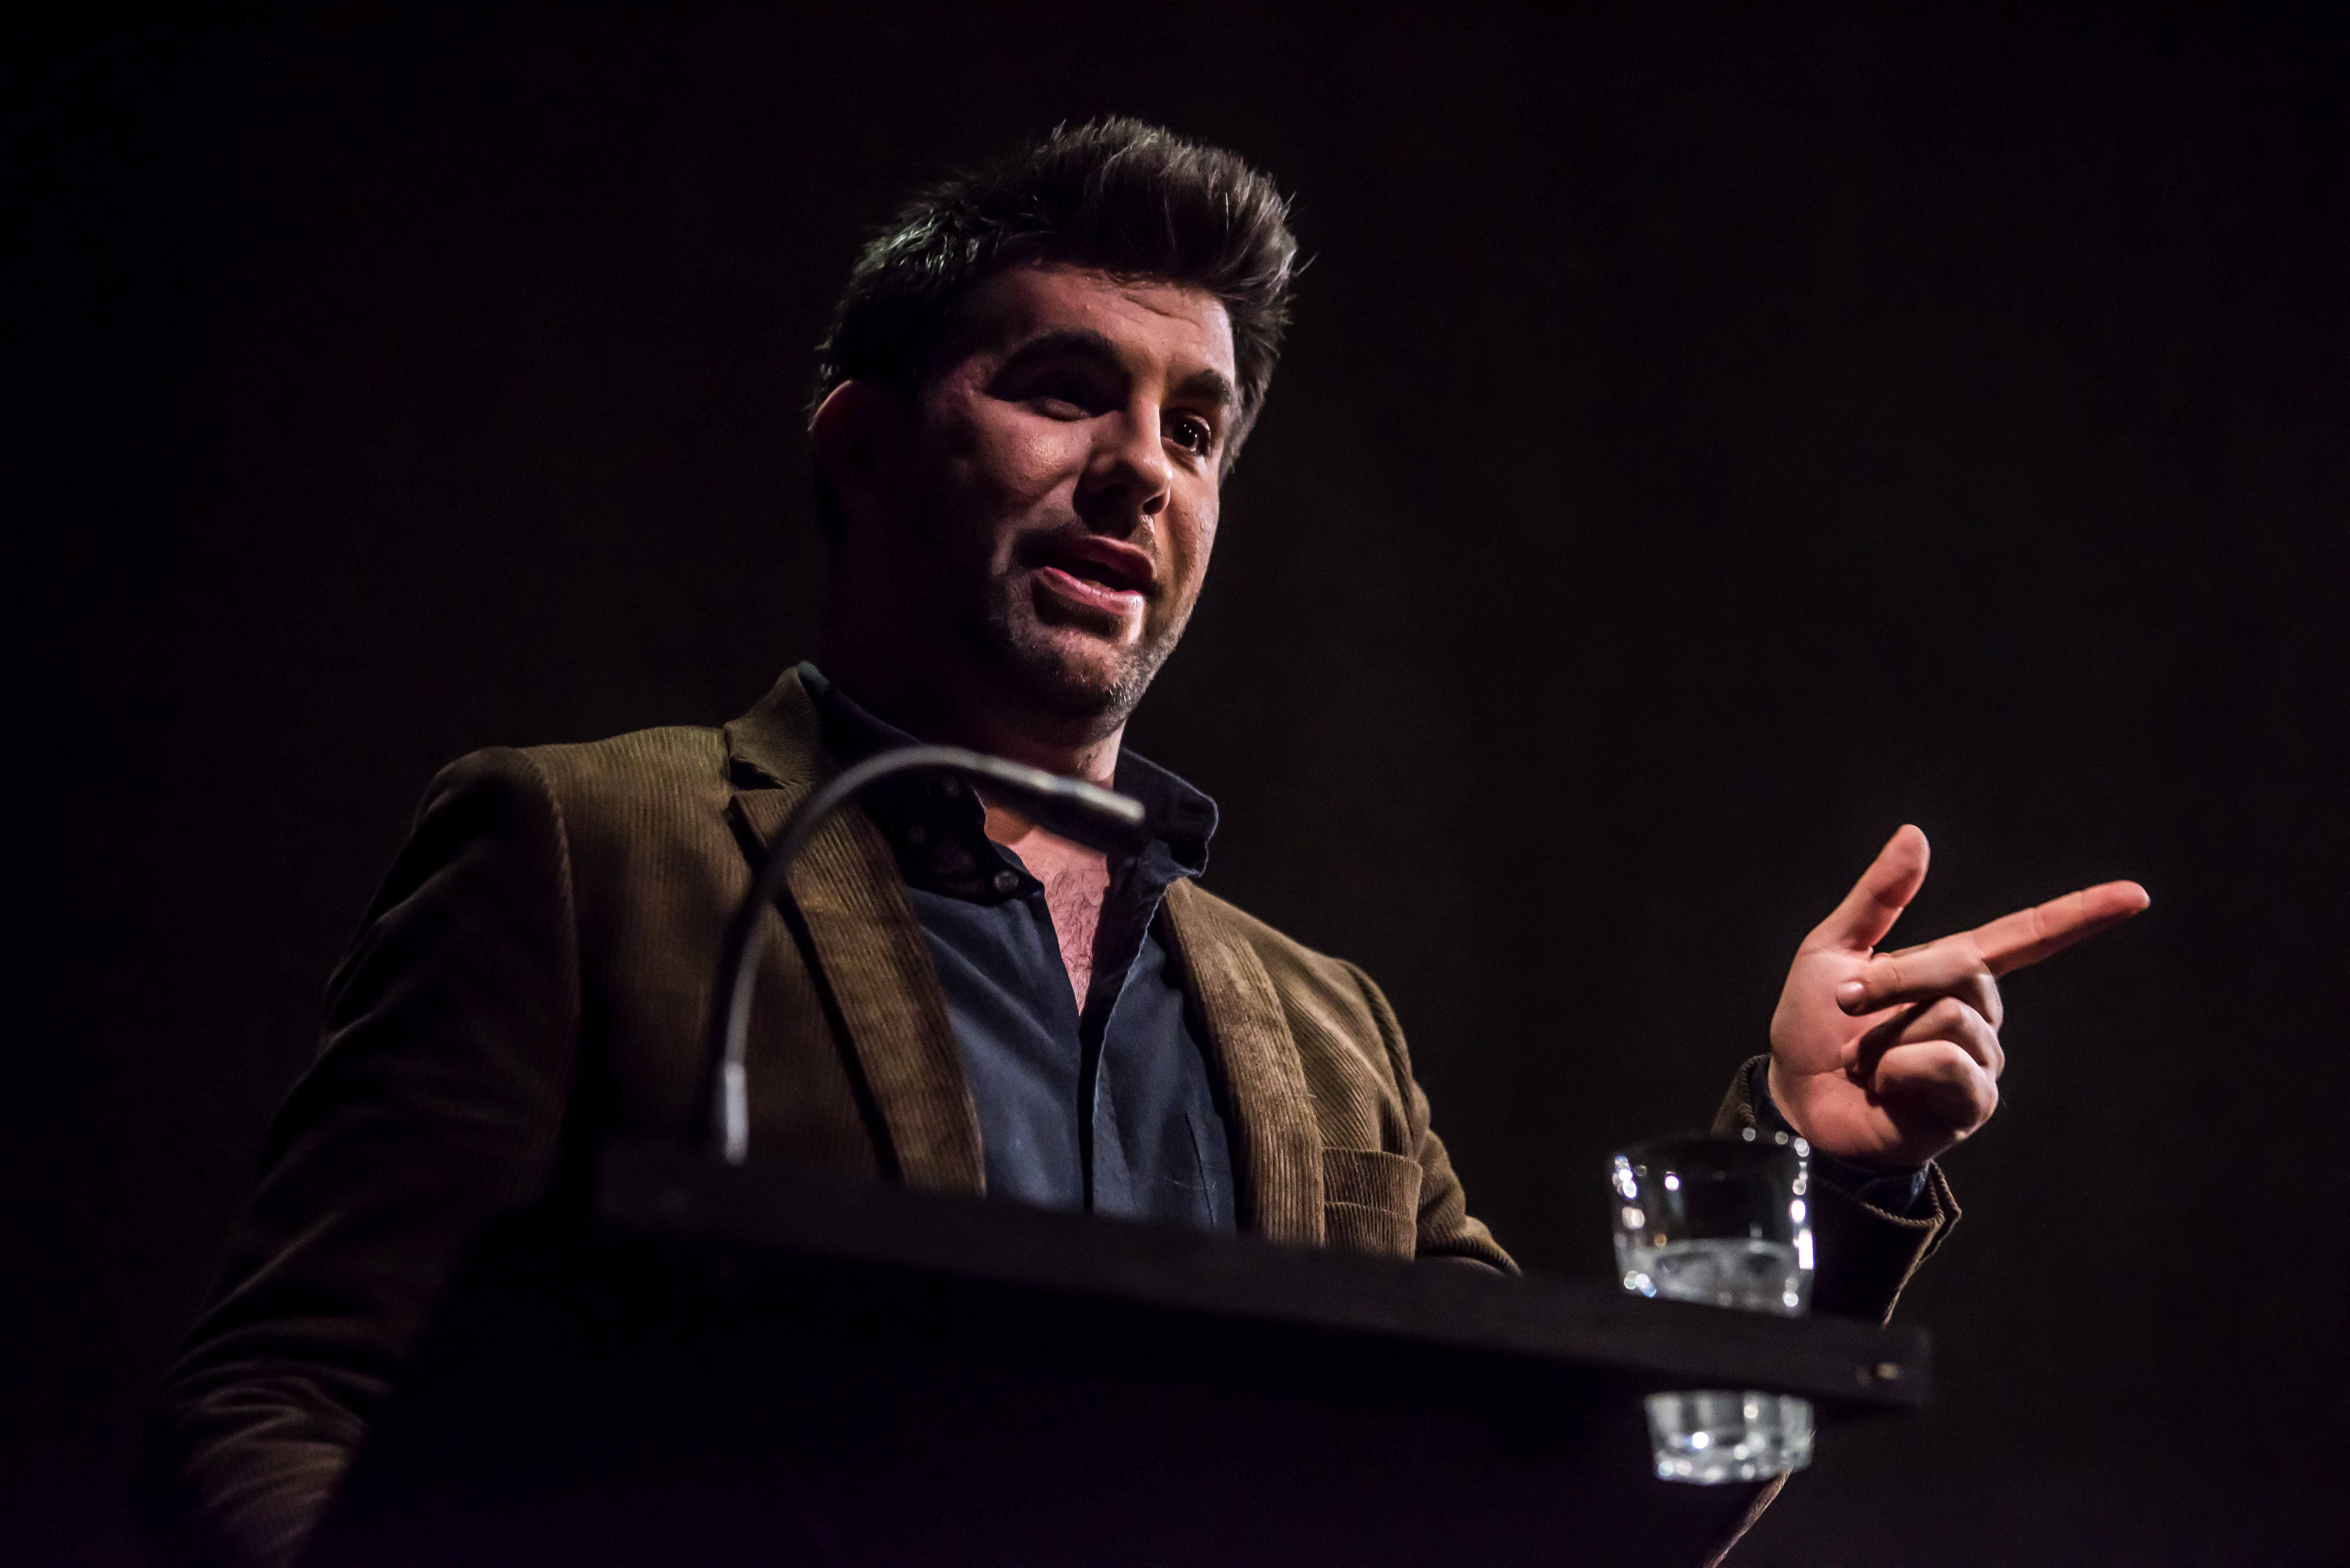 Simon Lipkin (Professor Goodman) in Ghost Stories at the Lyric Hammersmith. Photo credit Chris Payne